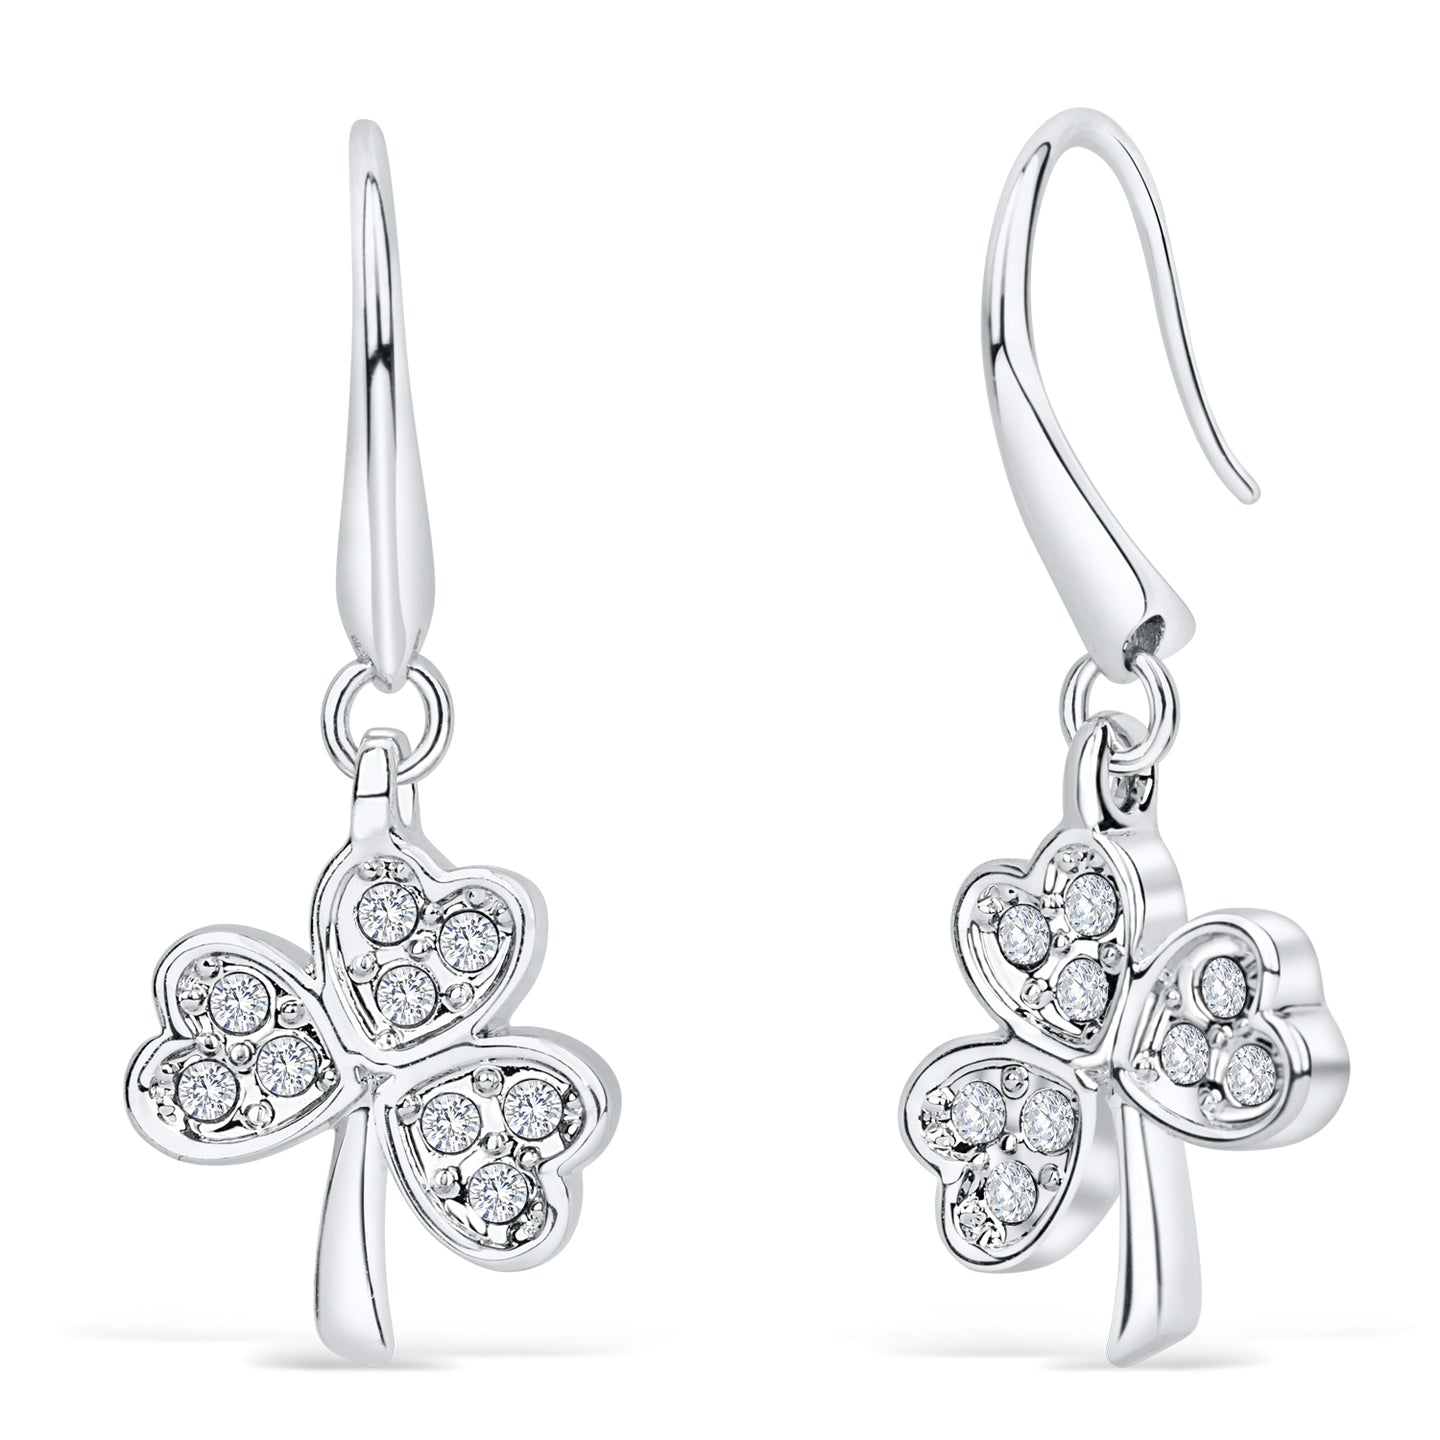 Shamrock Earrings with Clear Crystal